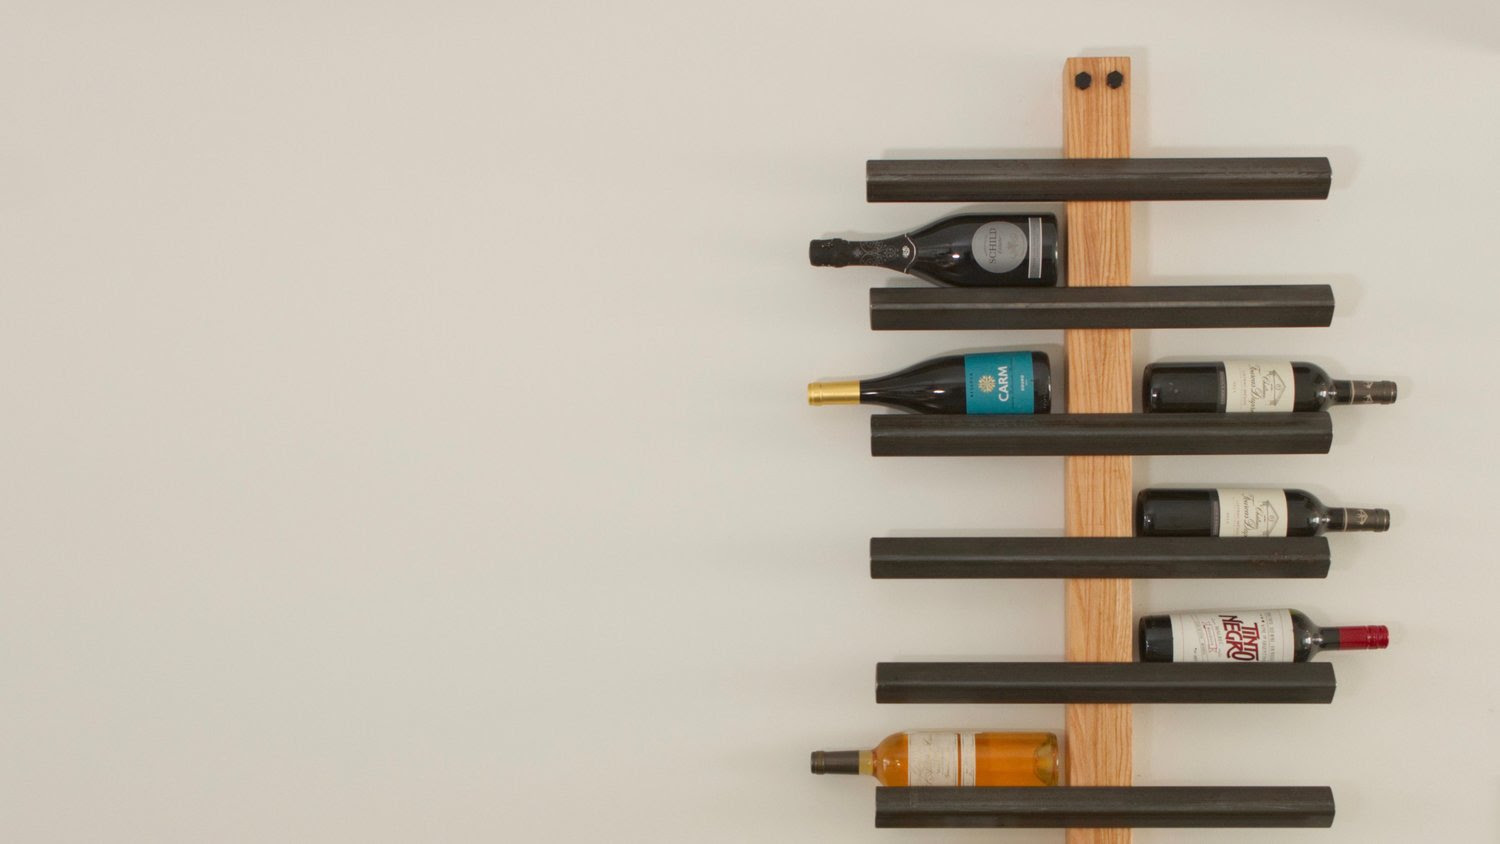 Making A Metal And Wood Wine Rack The Practical Engineer